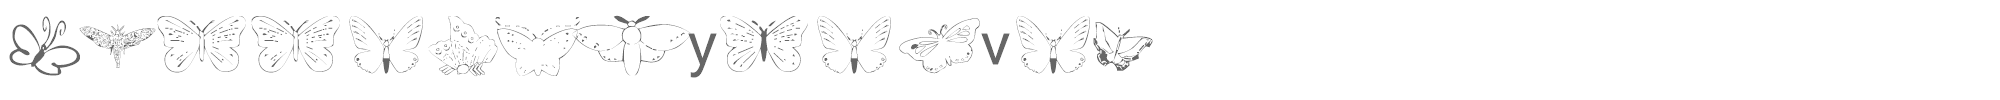 Butterfly Heaven ButterflyHeaven.ttf font preview